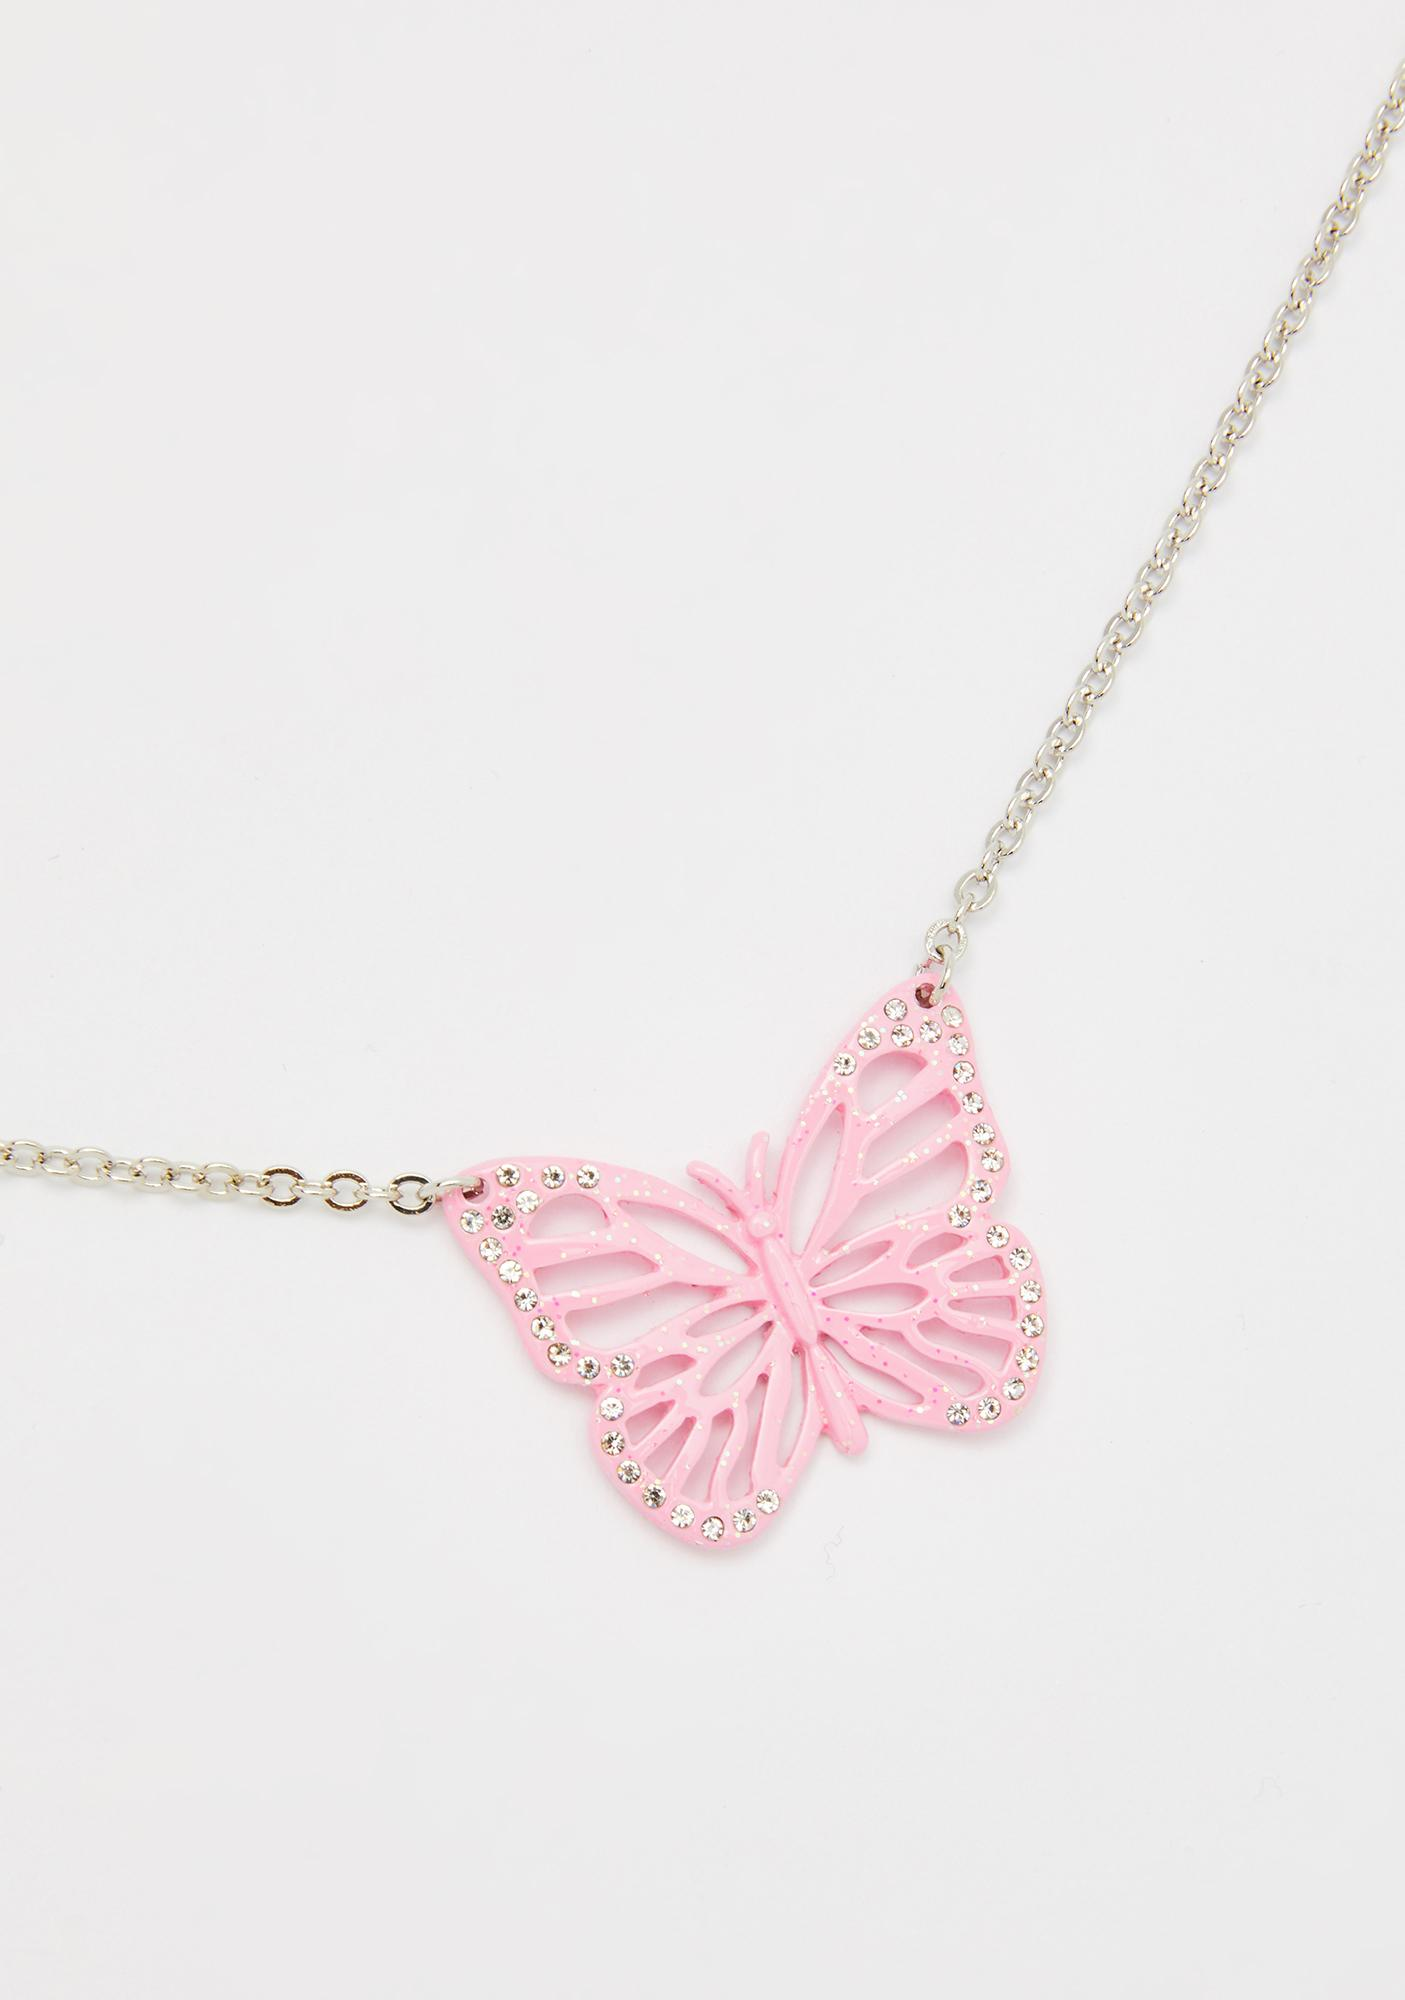 Spoiled Cute Butterfly Necklace